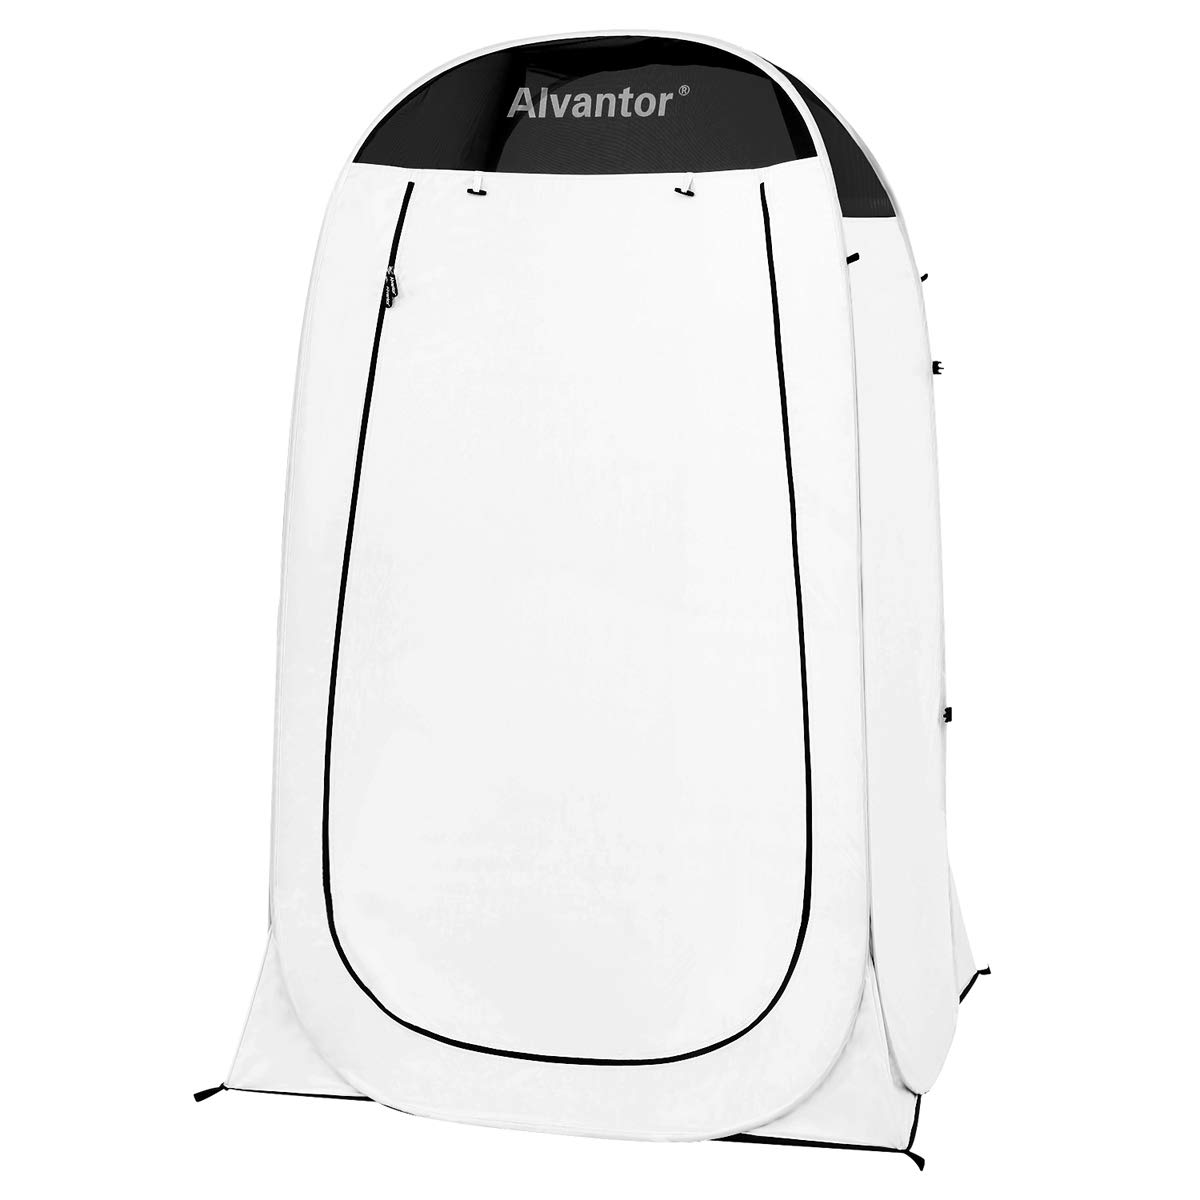 Alvantor Shower Tent Changing Room Outdoor Toilet Privacy Pop Up Camping Dressing Portable Shelter Teflon Coating 4'x4'x7' Patent by Alvantor